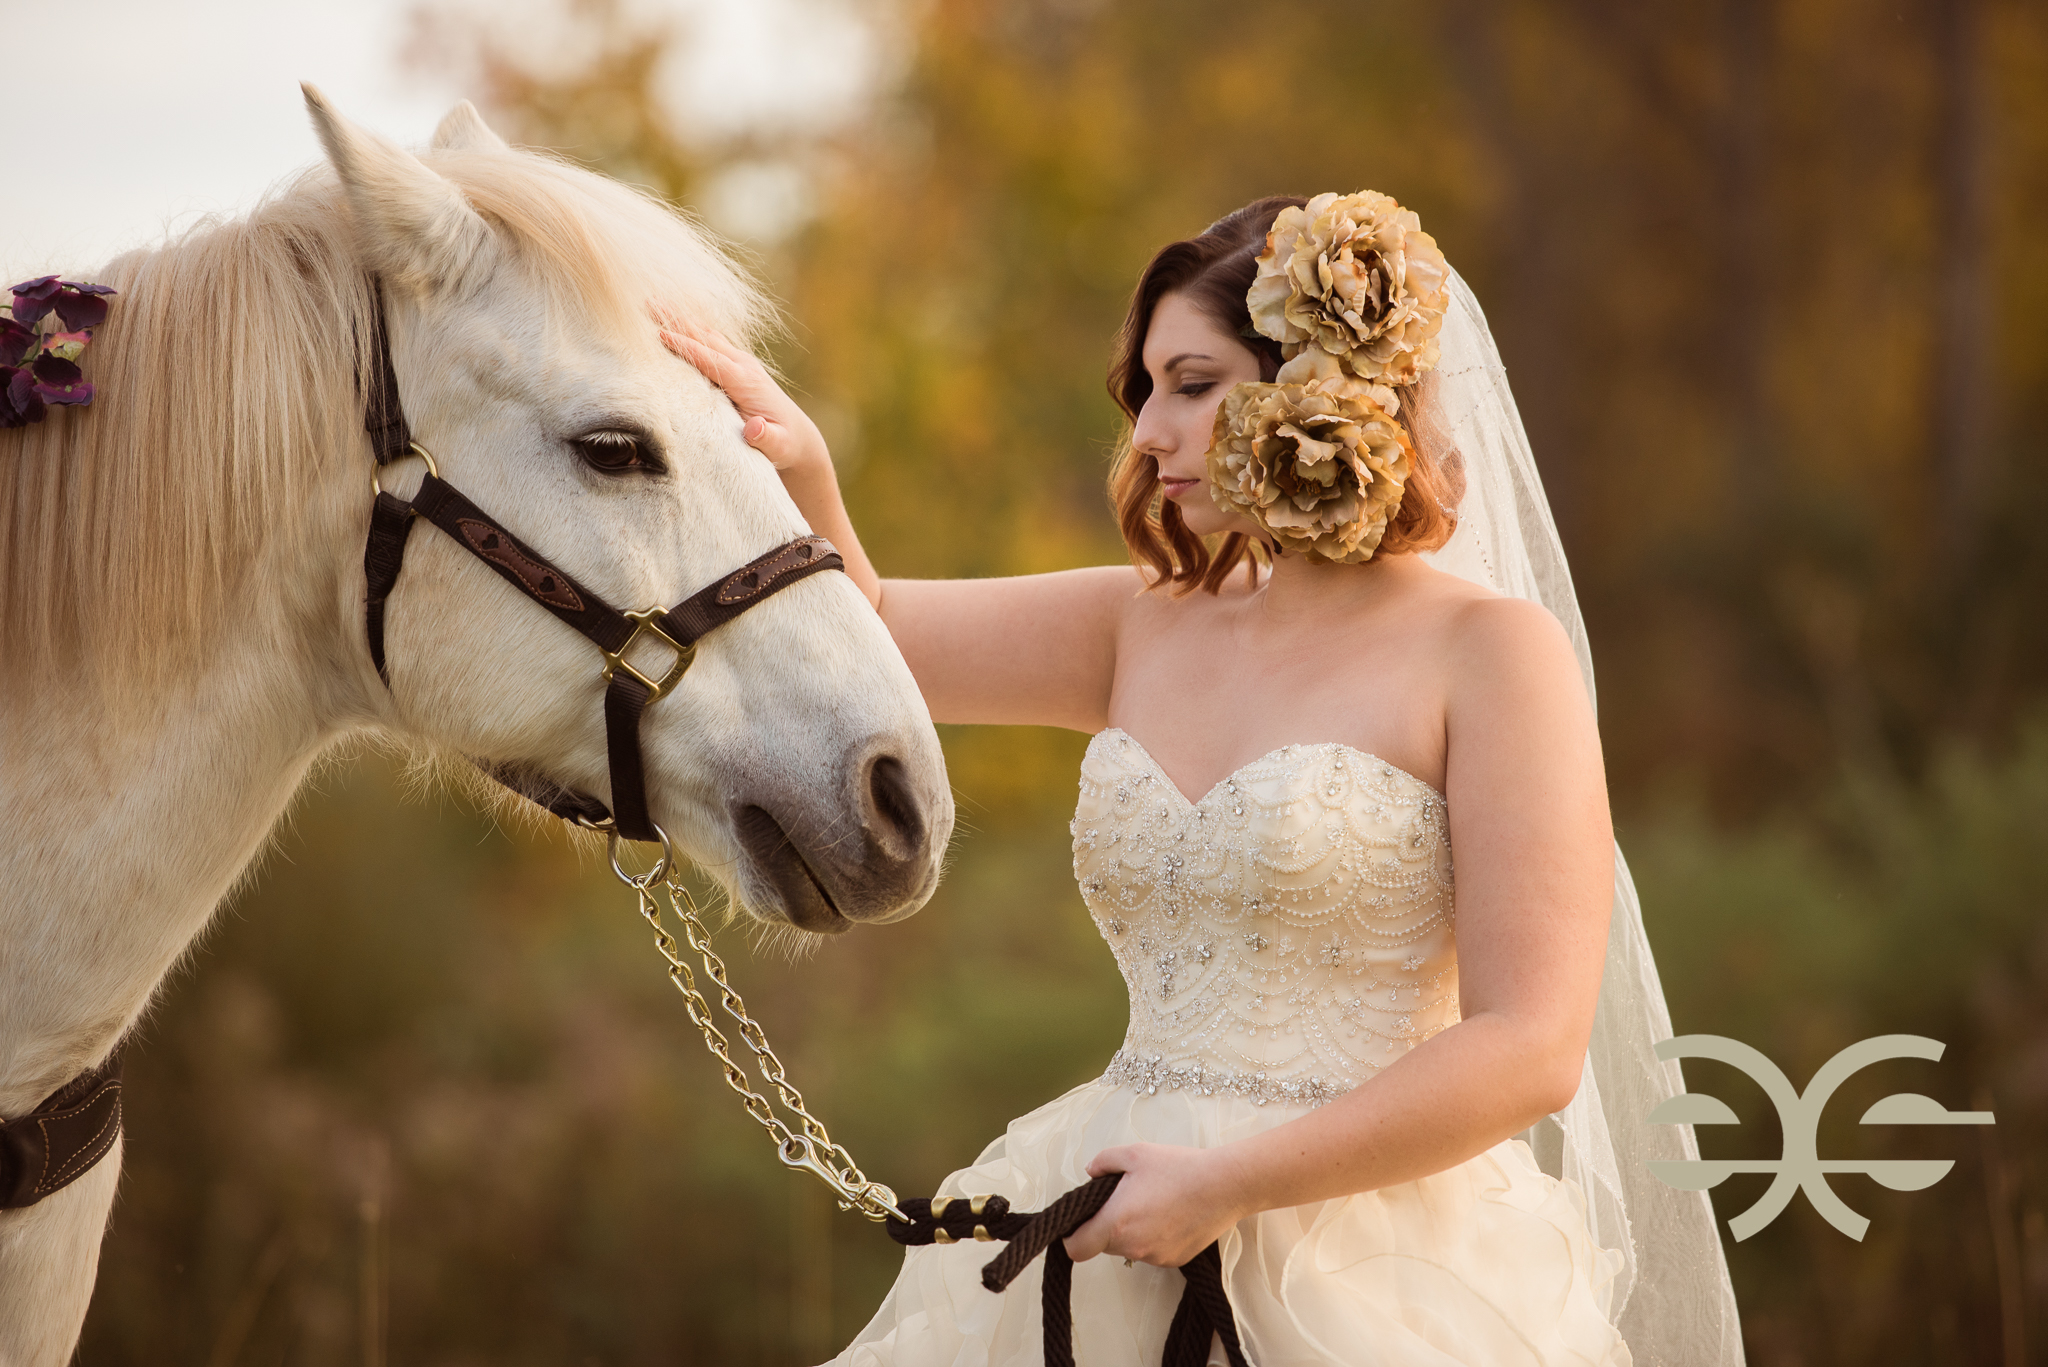 A bride and her horse in Buffalo, NY